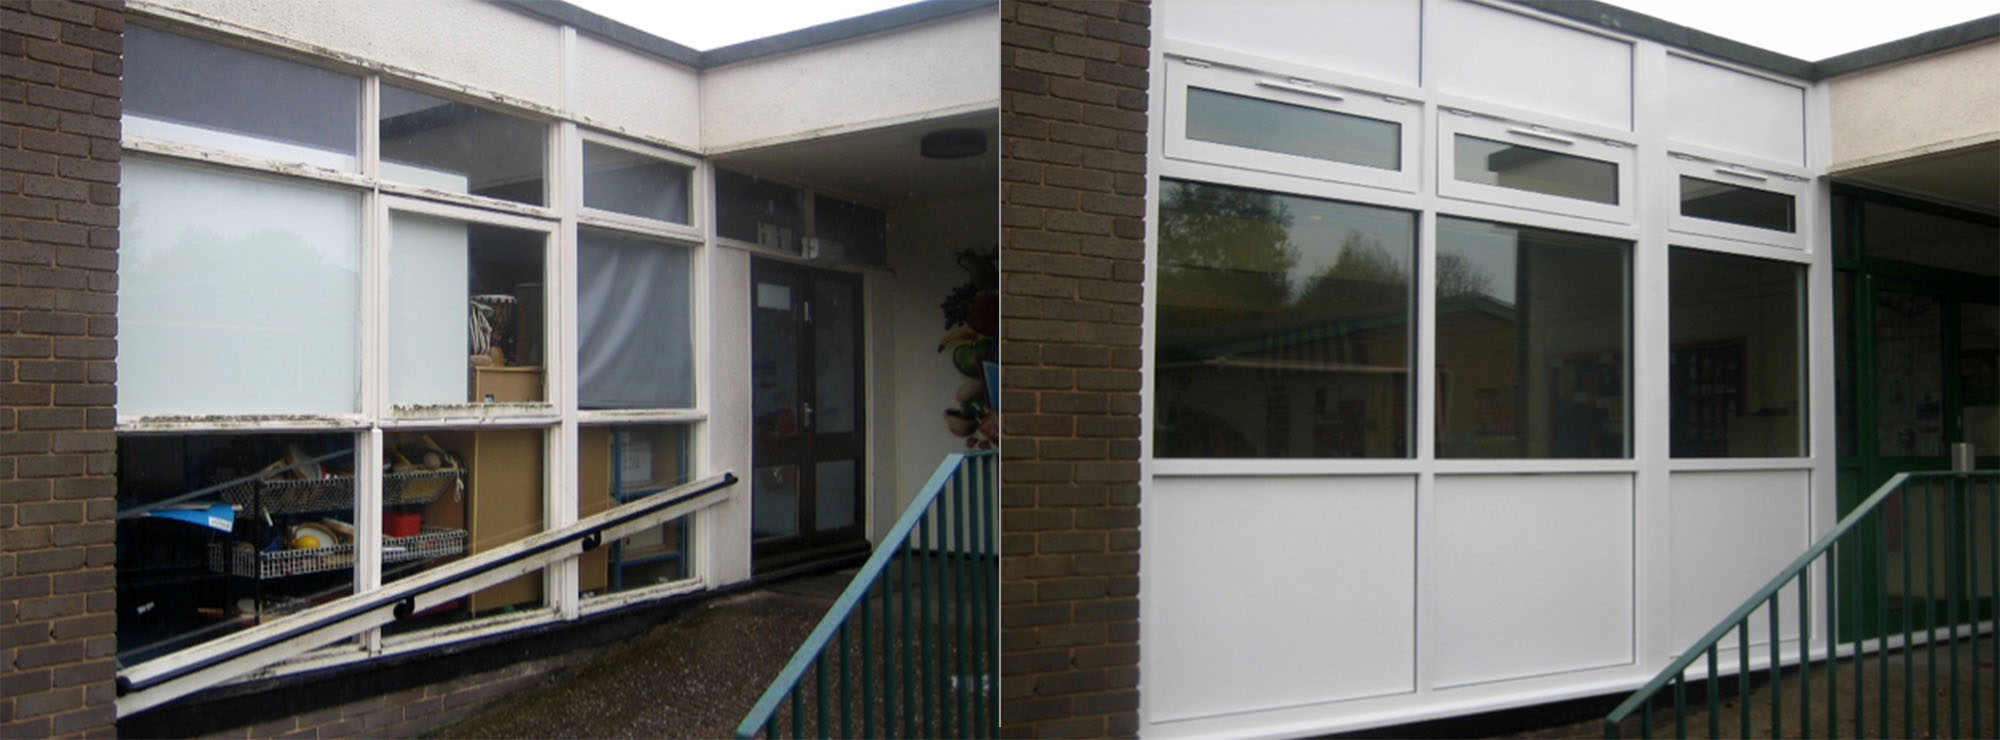 <strong>Infants & Junior School in West Midlands.</strong>Replacement timber windows with white commercial aluminium.